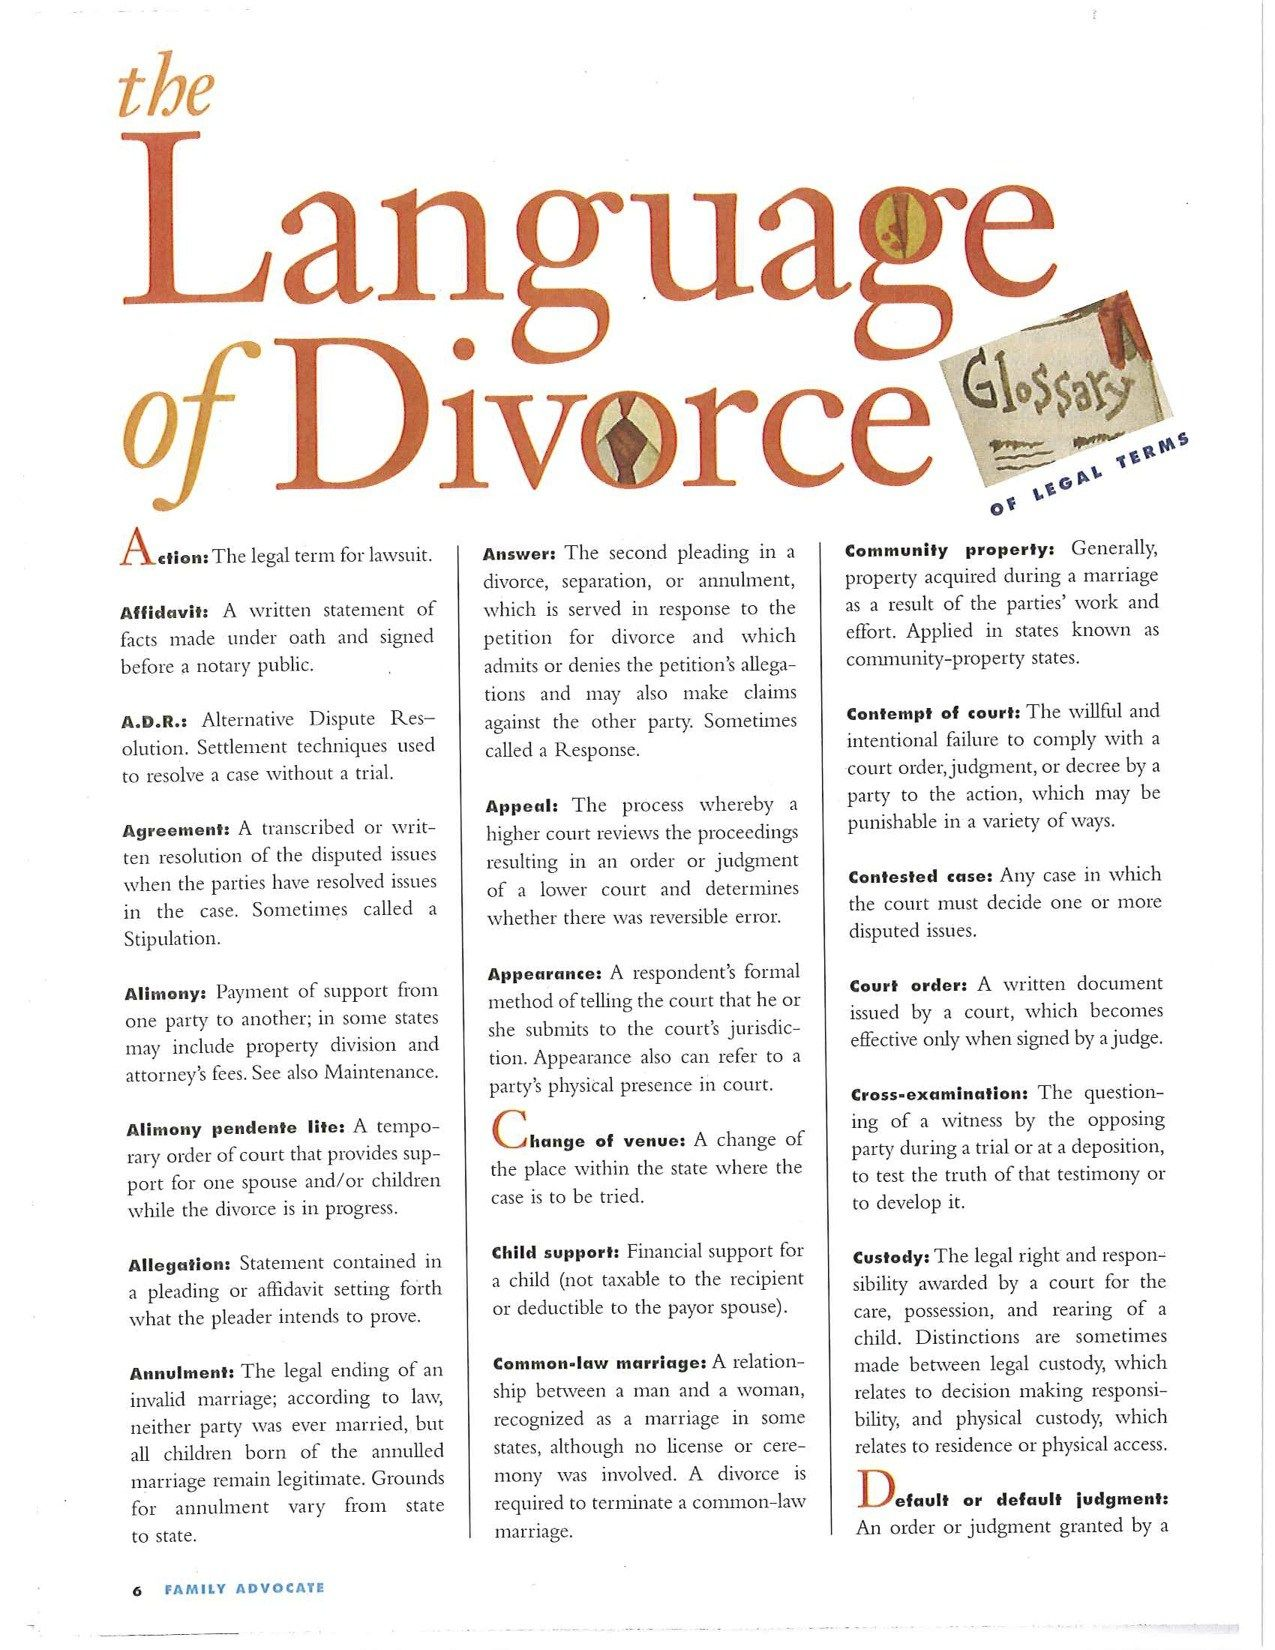 Legal Divorce Terms You Need To Know A Handy Guide